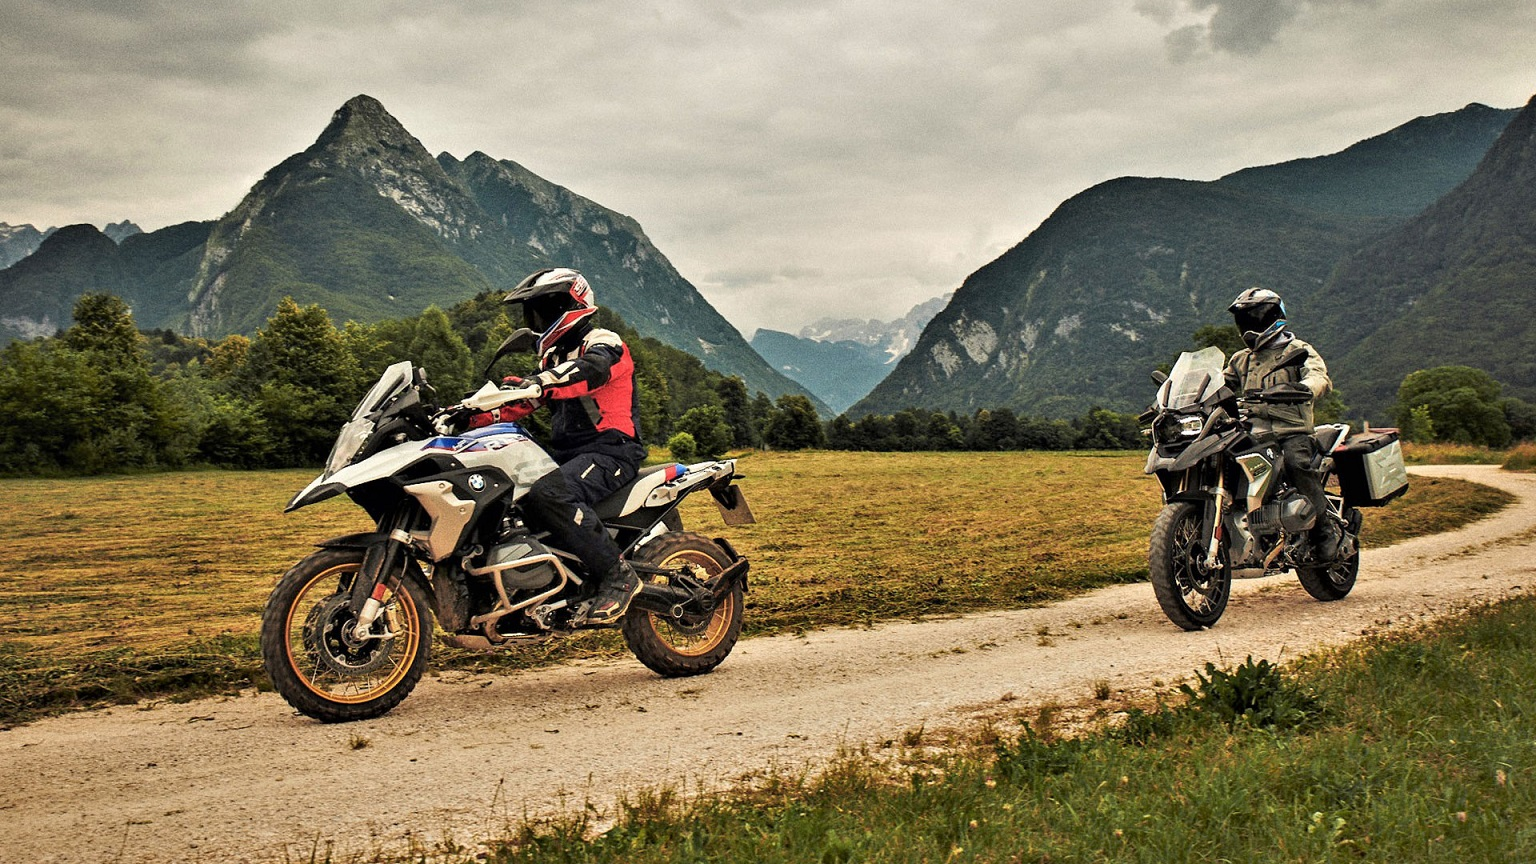 2020 BMW R 1250 GS Exterior Side View